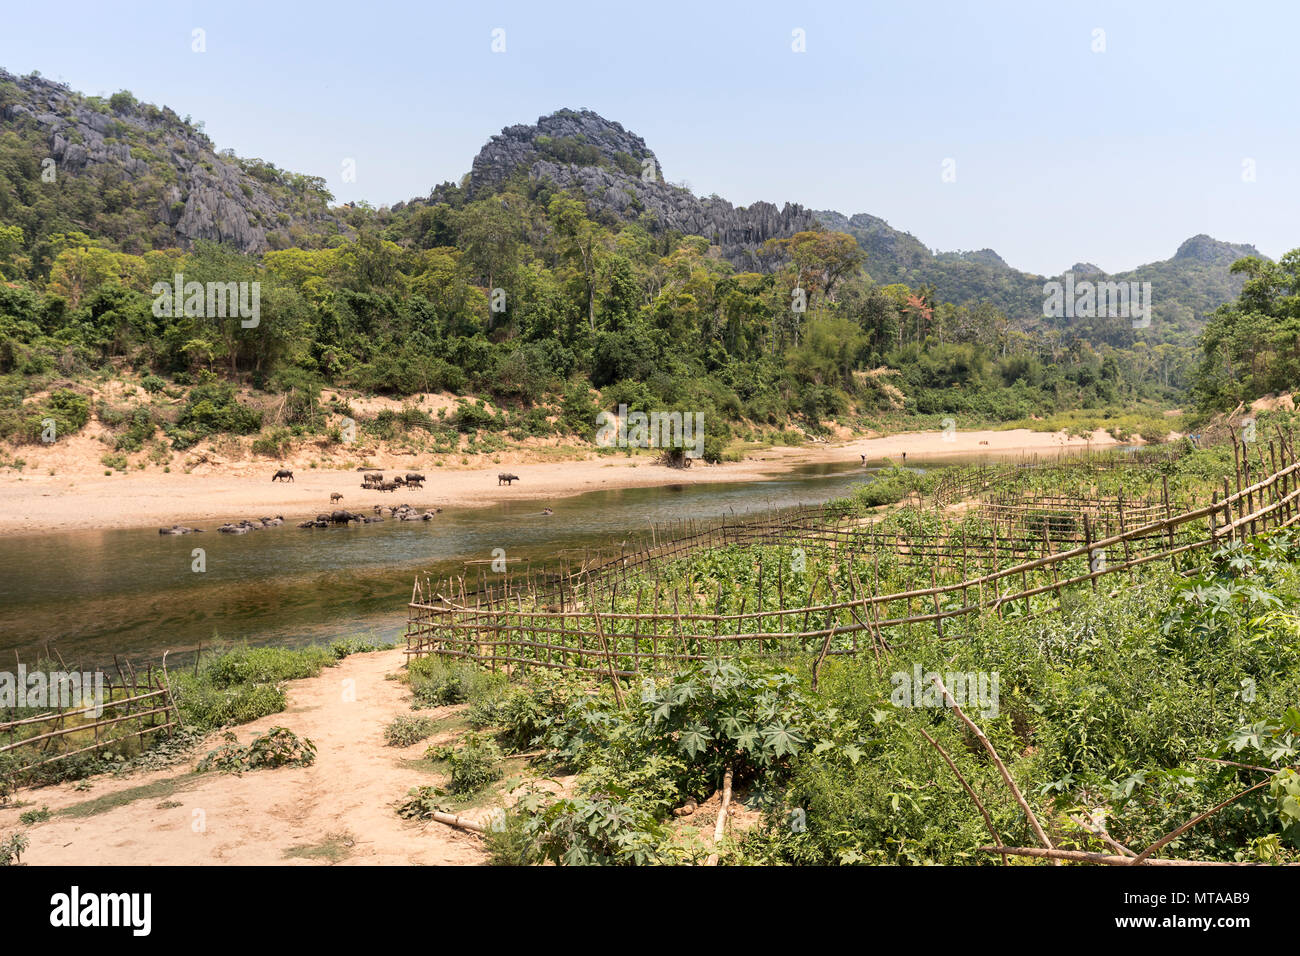 Fenced growing area alongside river with water buffalo, Nong Ping, Laos - Stock Image